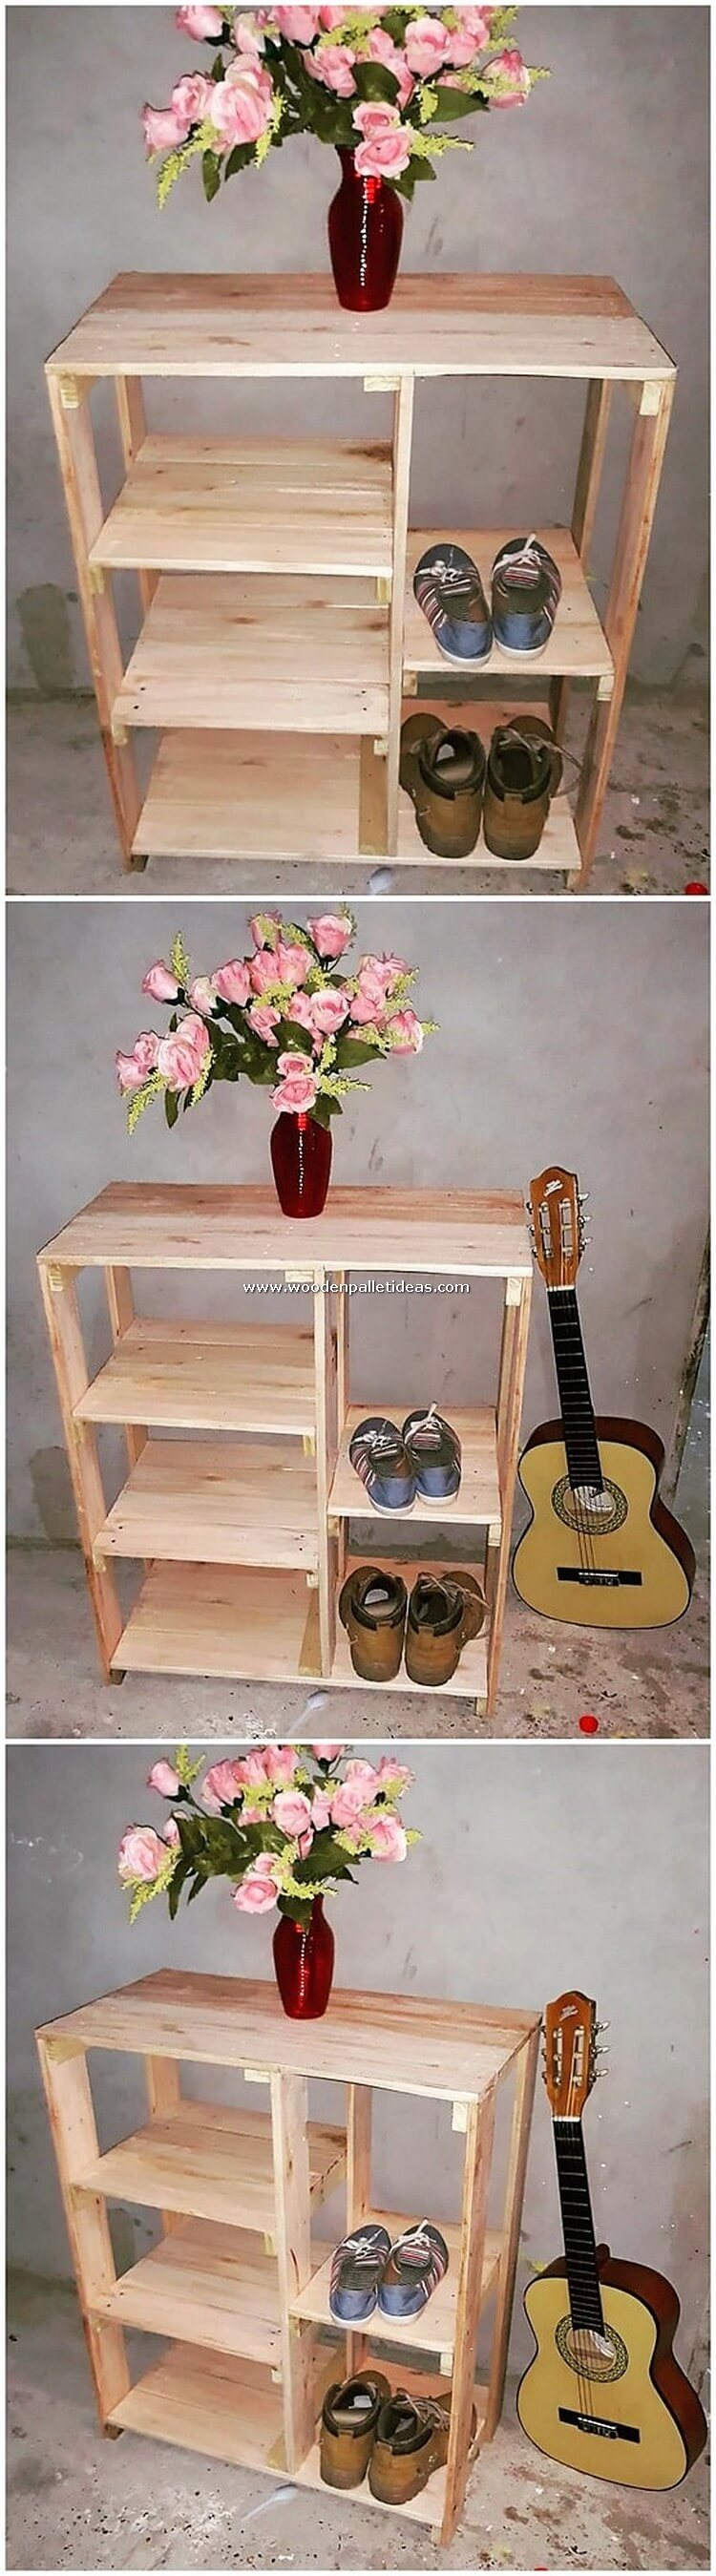 Pallet Wood Table with Shoe Rack